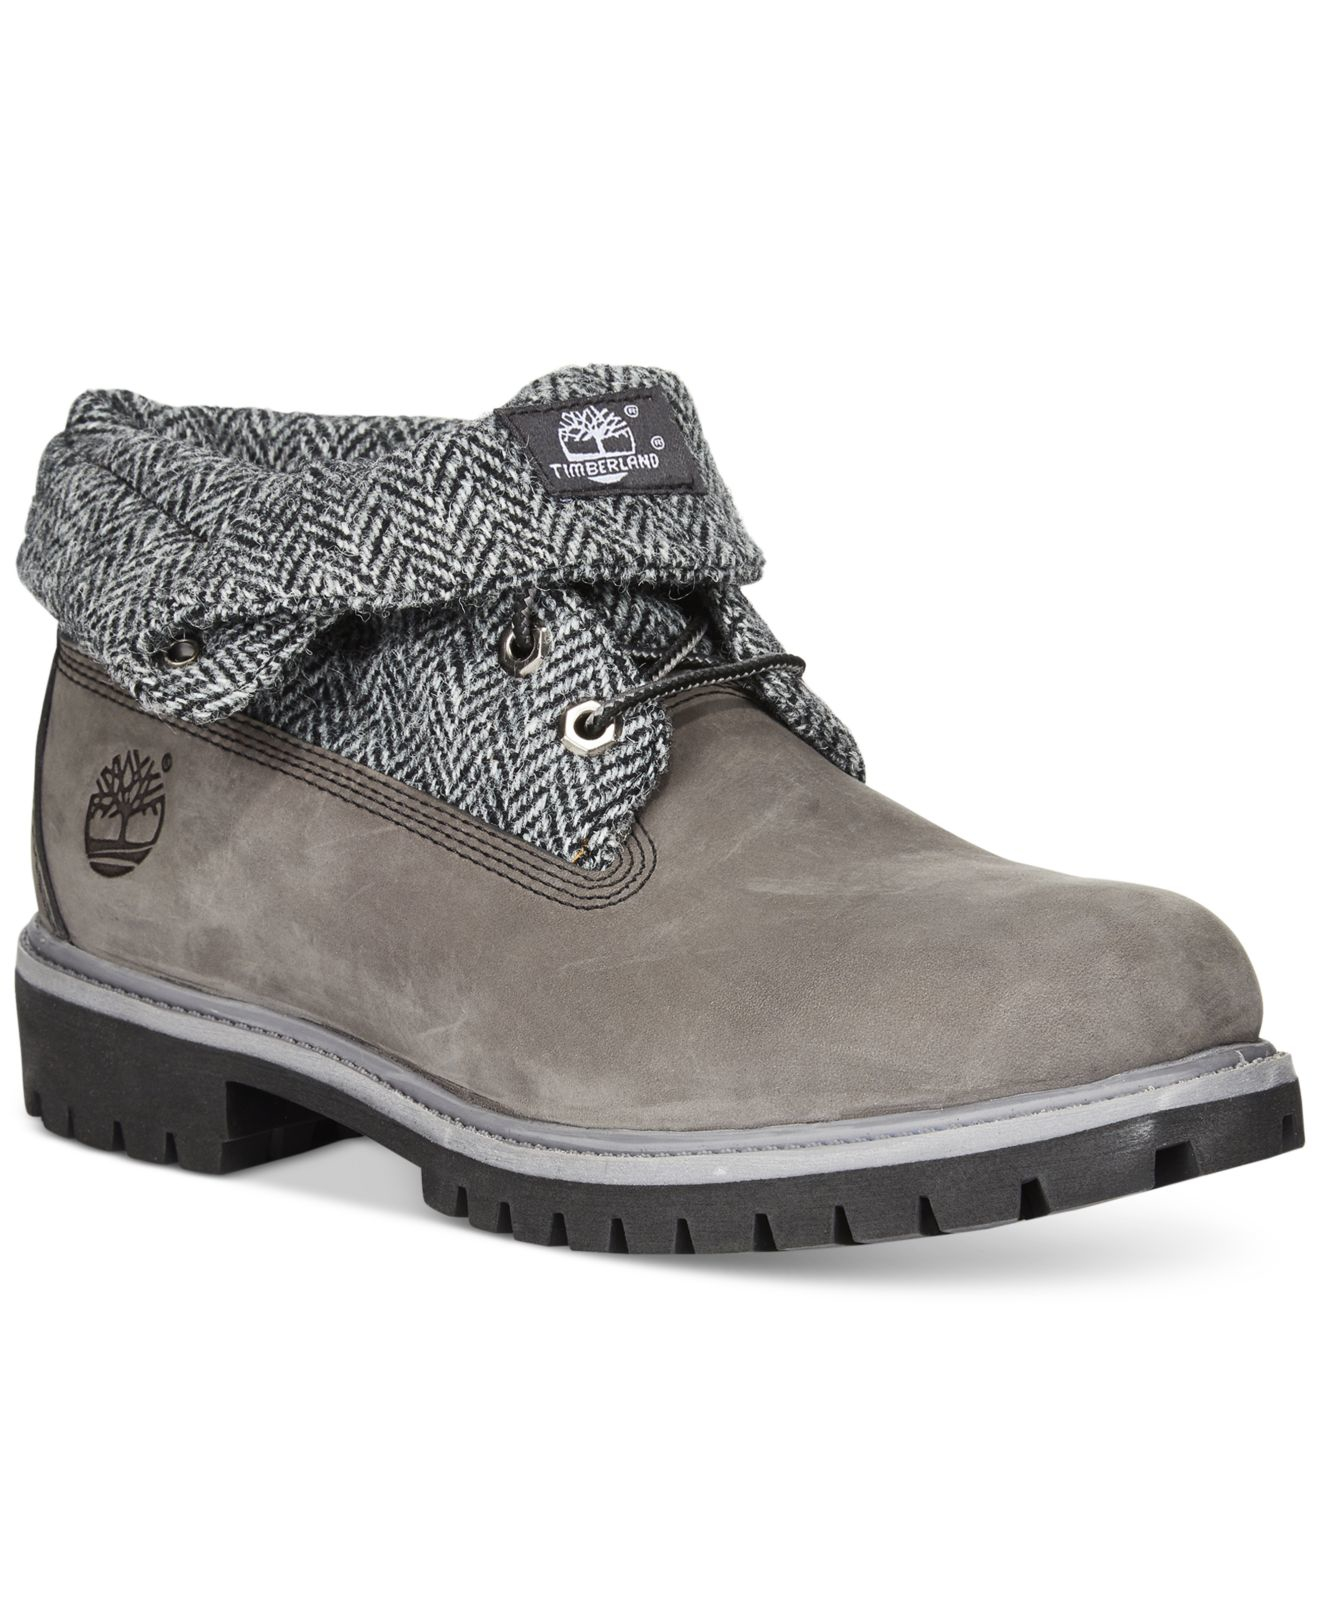 timberland men's roll top boots grey